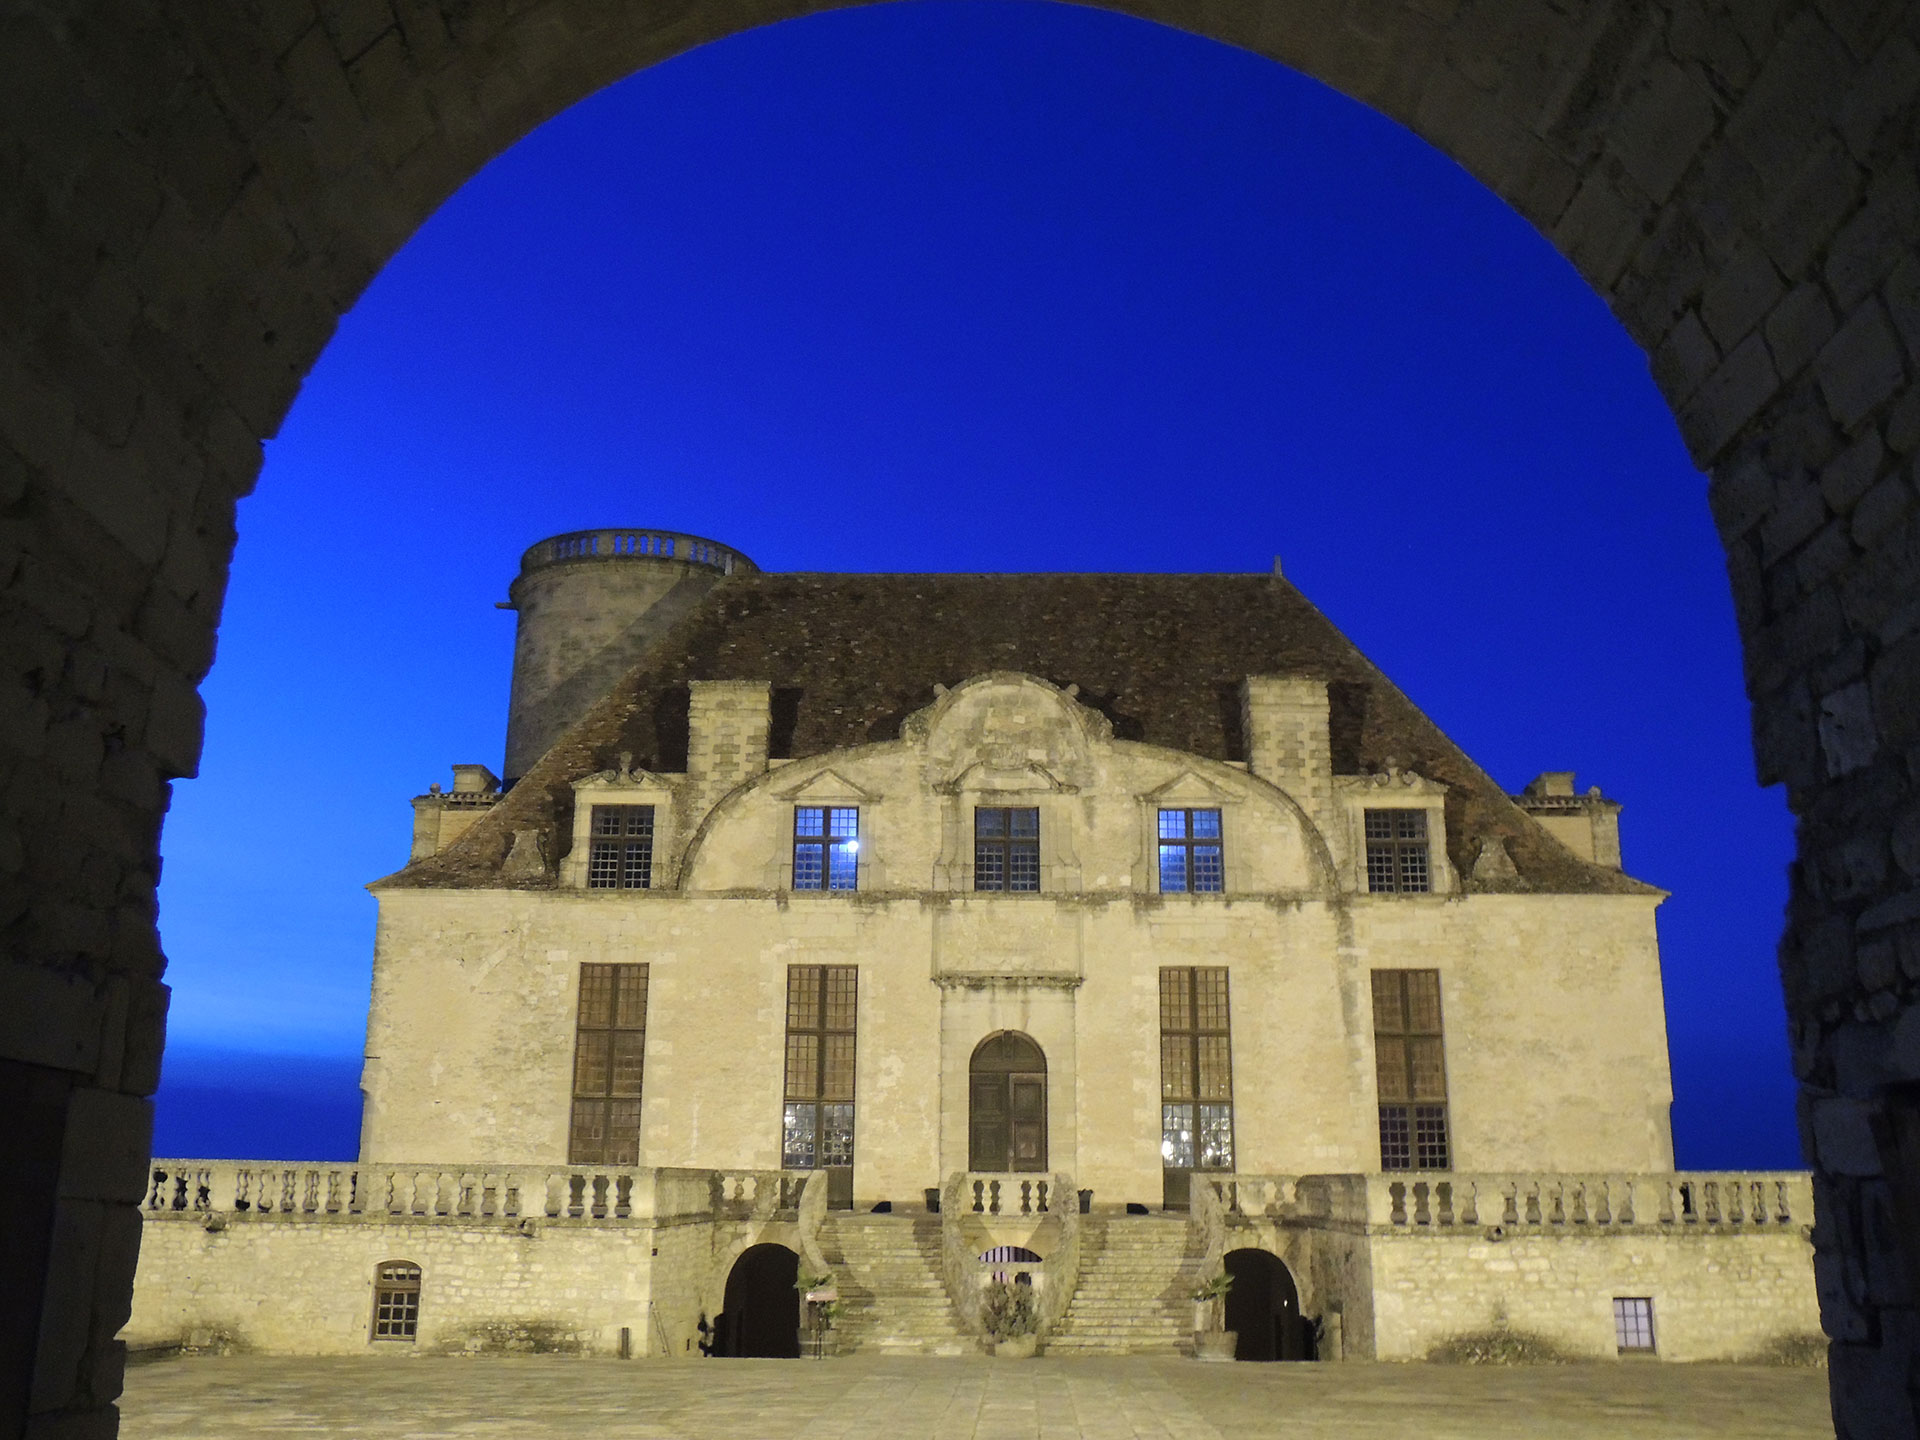 Exhibitions at Duras Castle